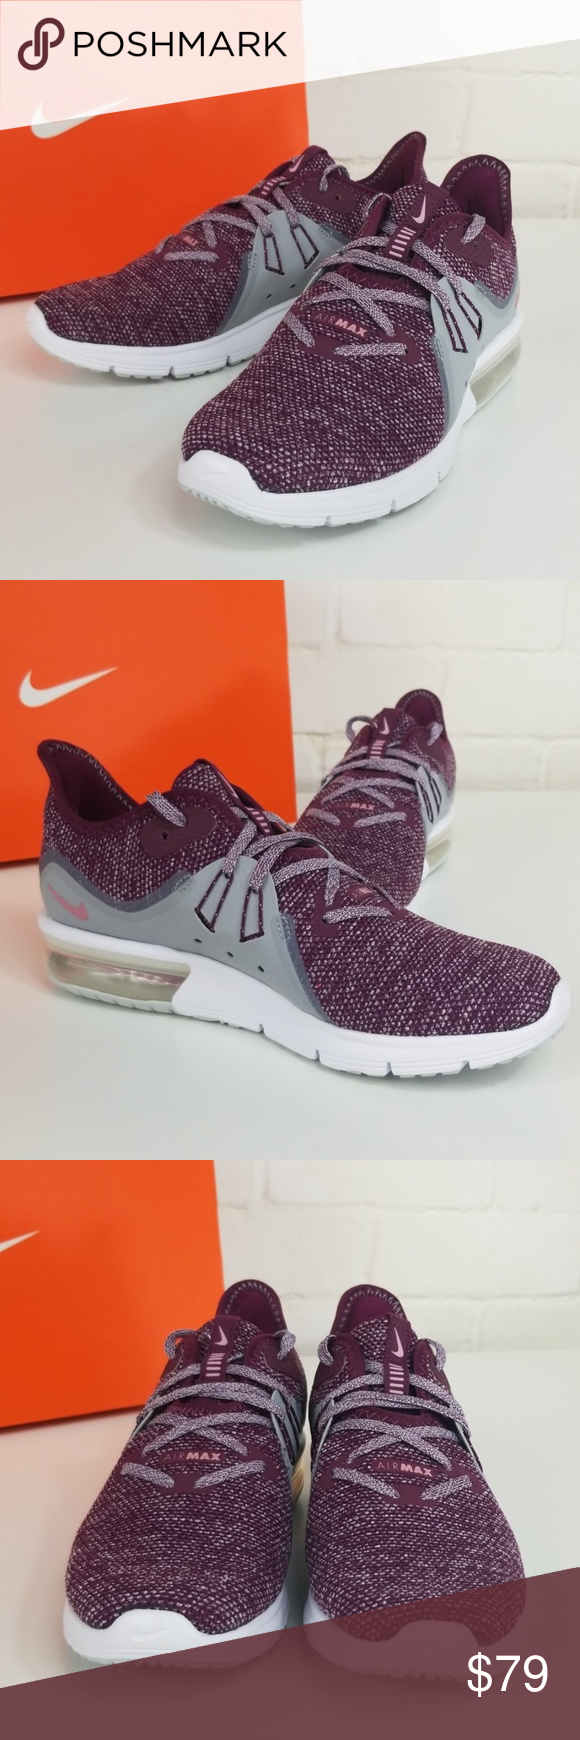 Schuhe NIKE Air Max Sequent 3 908993 606 BordeauxElemental Pink